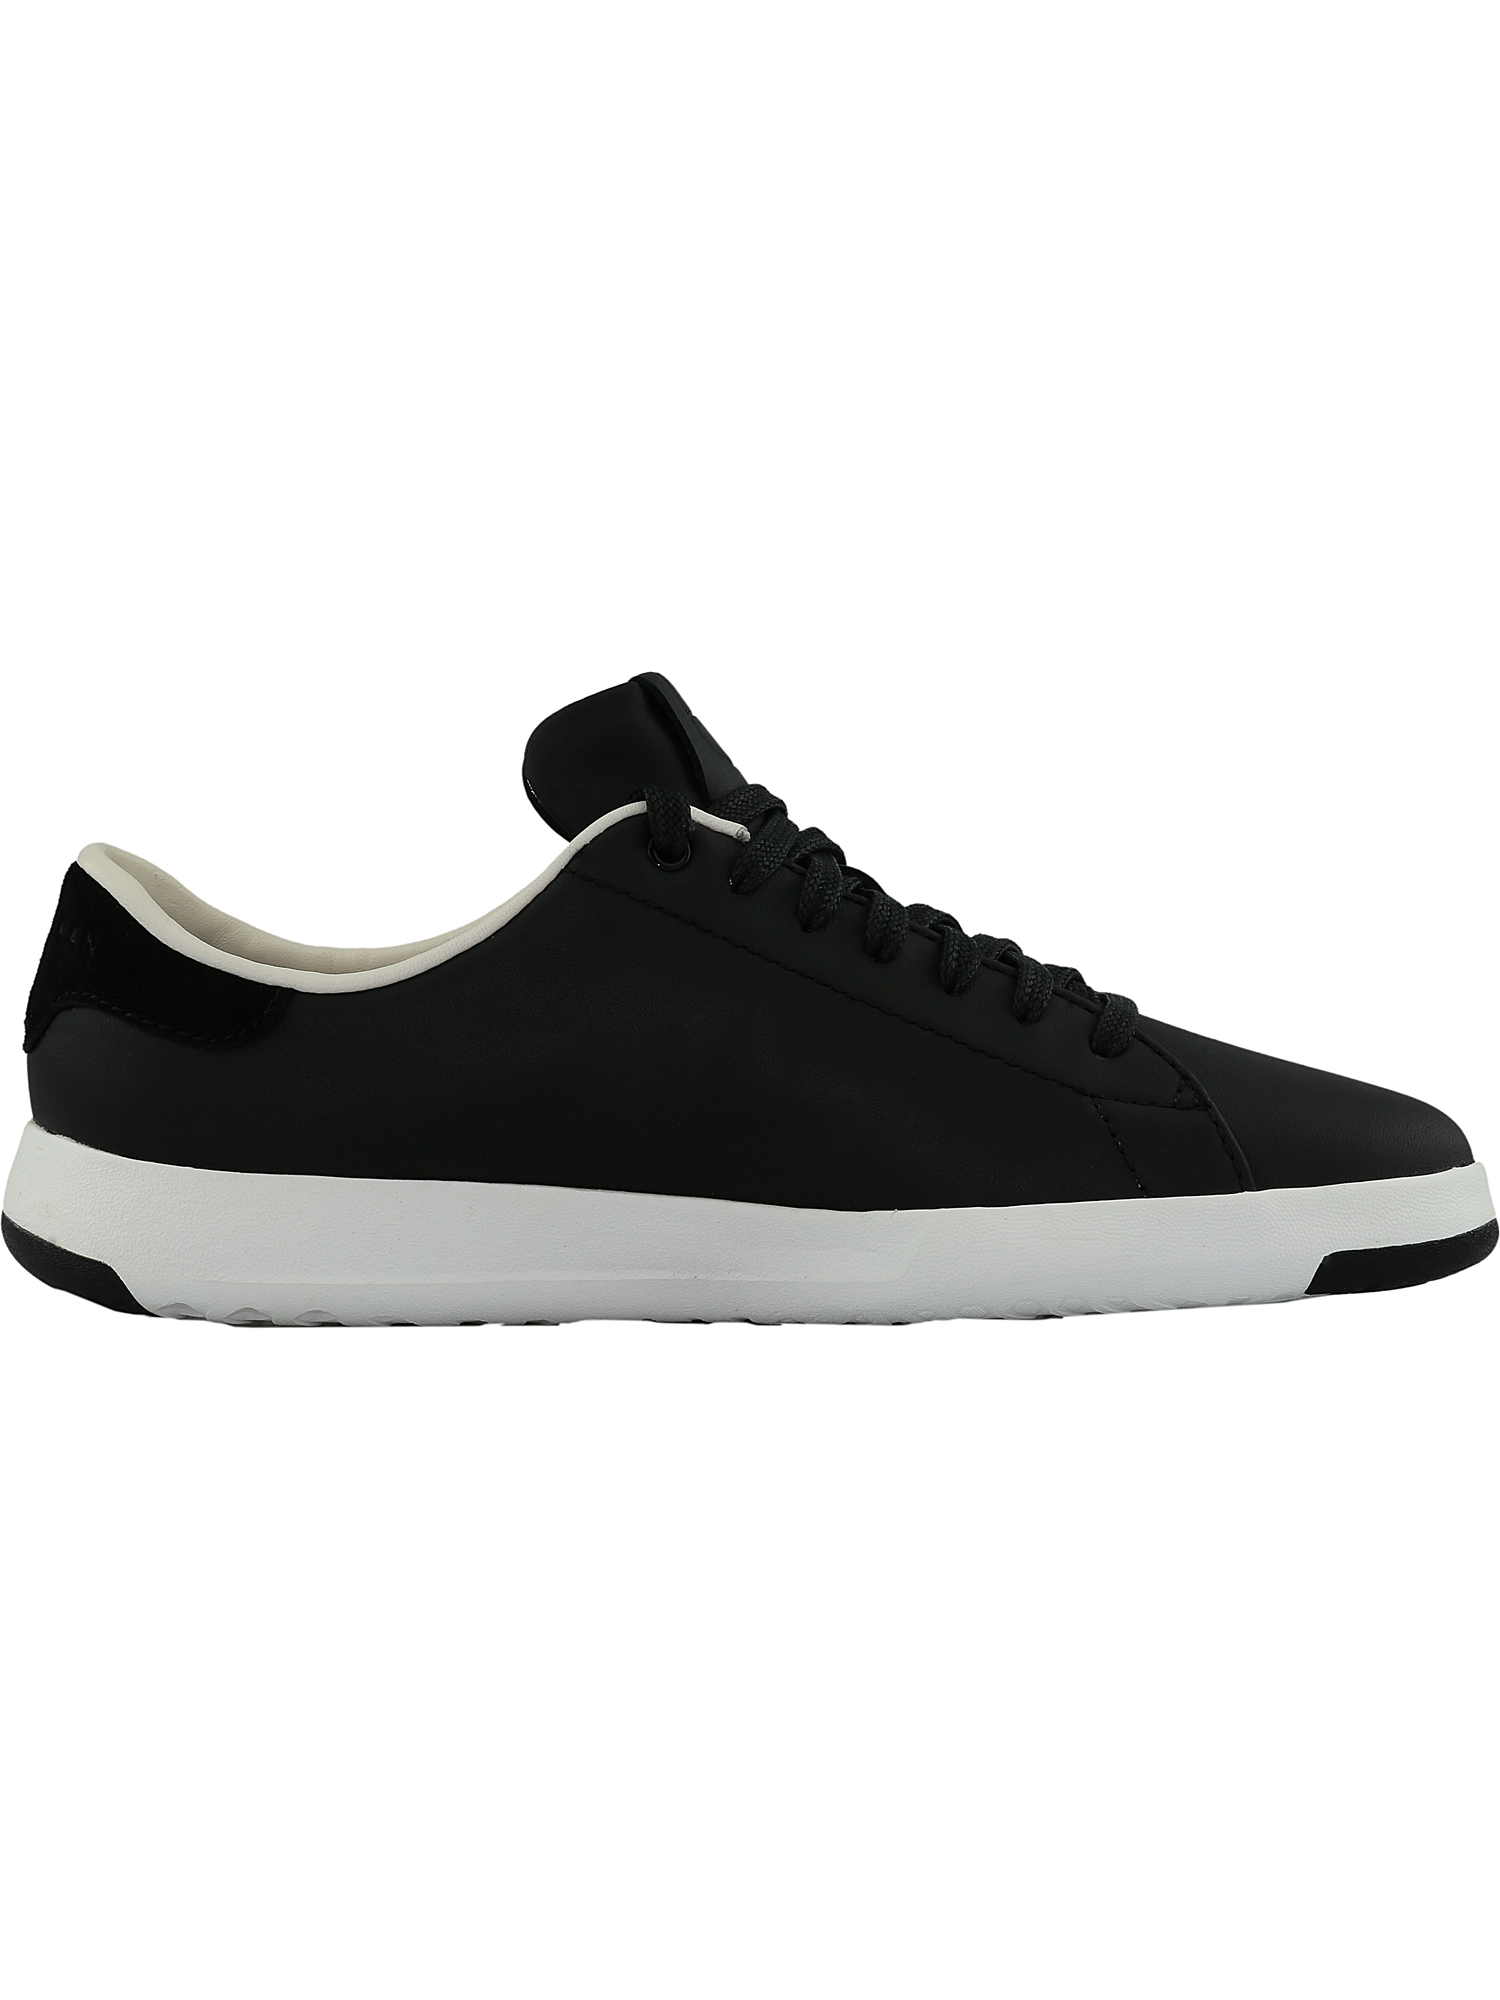 Cole Haan Women's Grandpro Tennis Ankle-High Black / Optic White Ankle-High Tennis Leather Fashion Sneaker - 7.5M 90246e